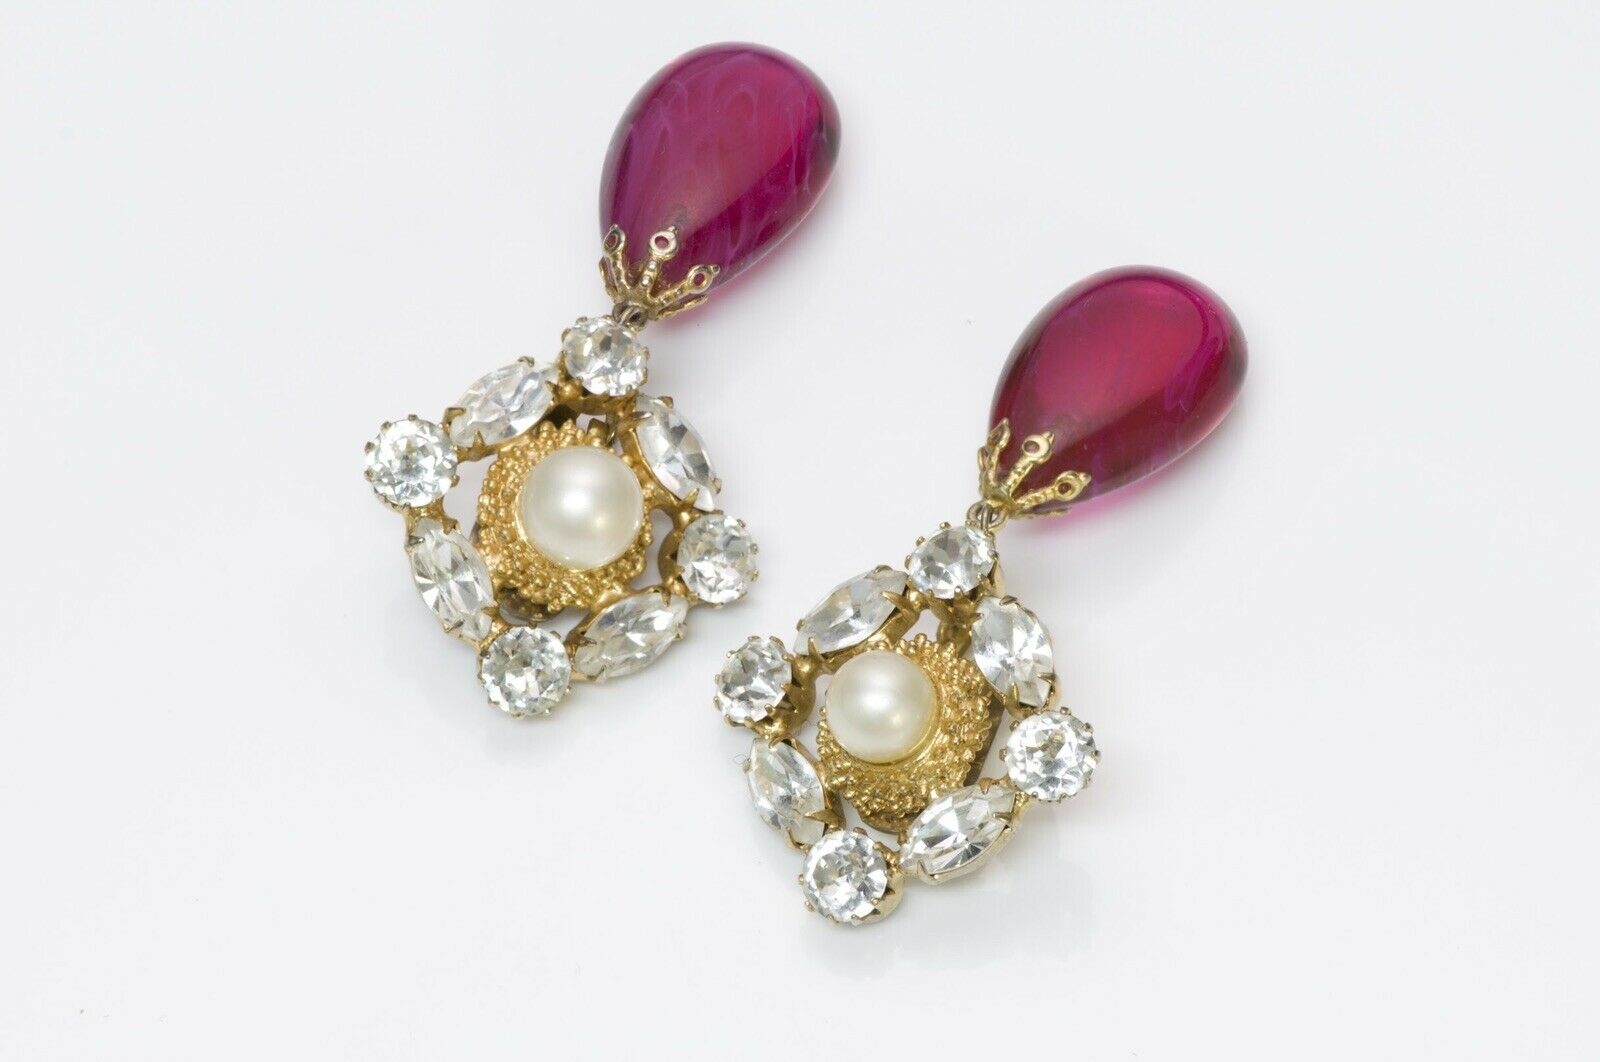 Arnold Scaasi Couture Crystal Pink Glass Earrings - image 3